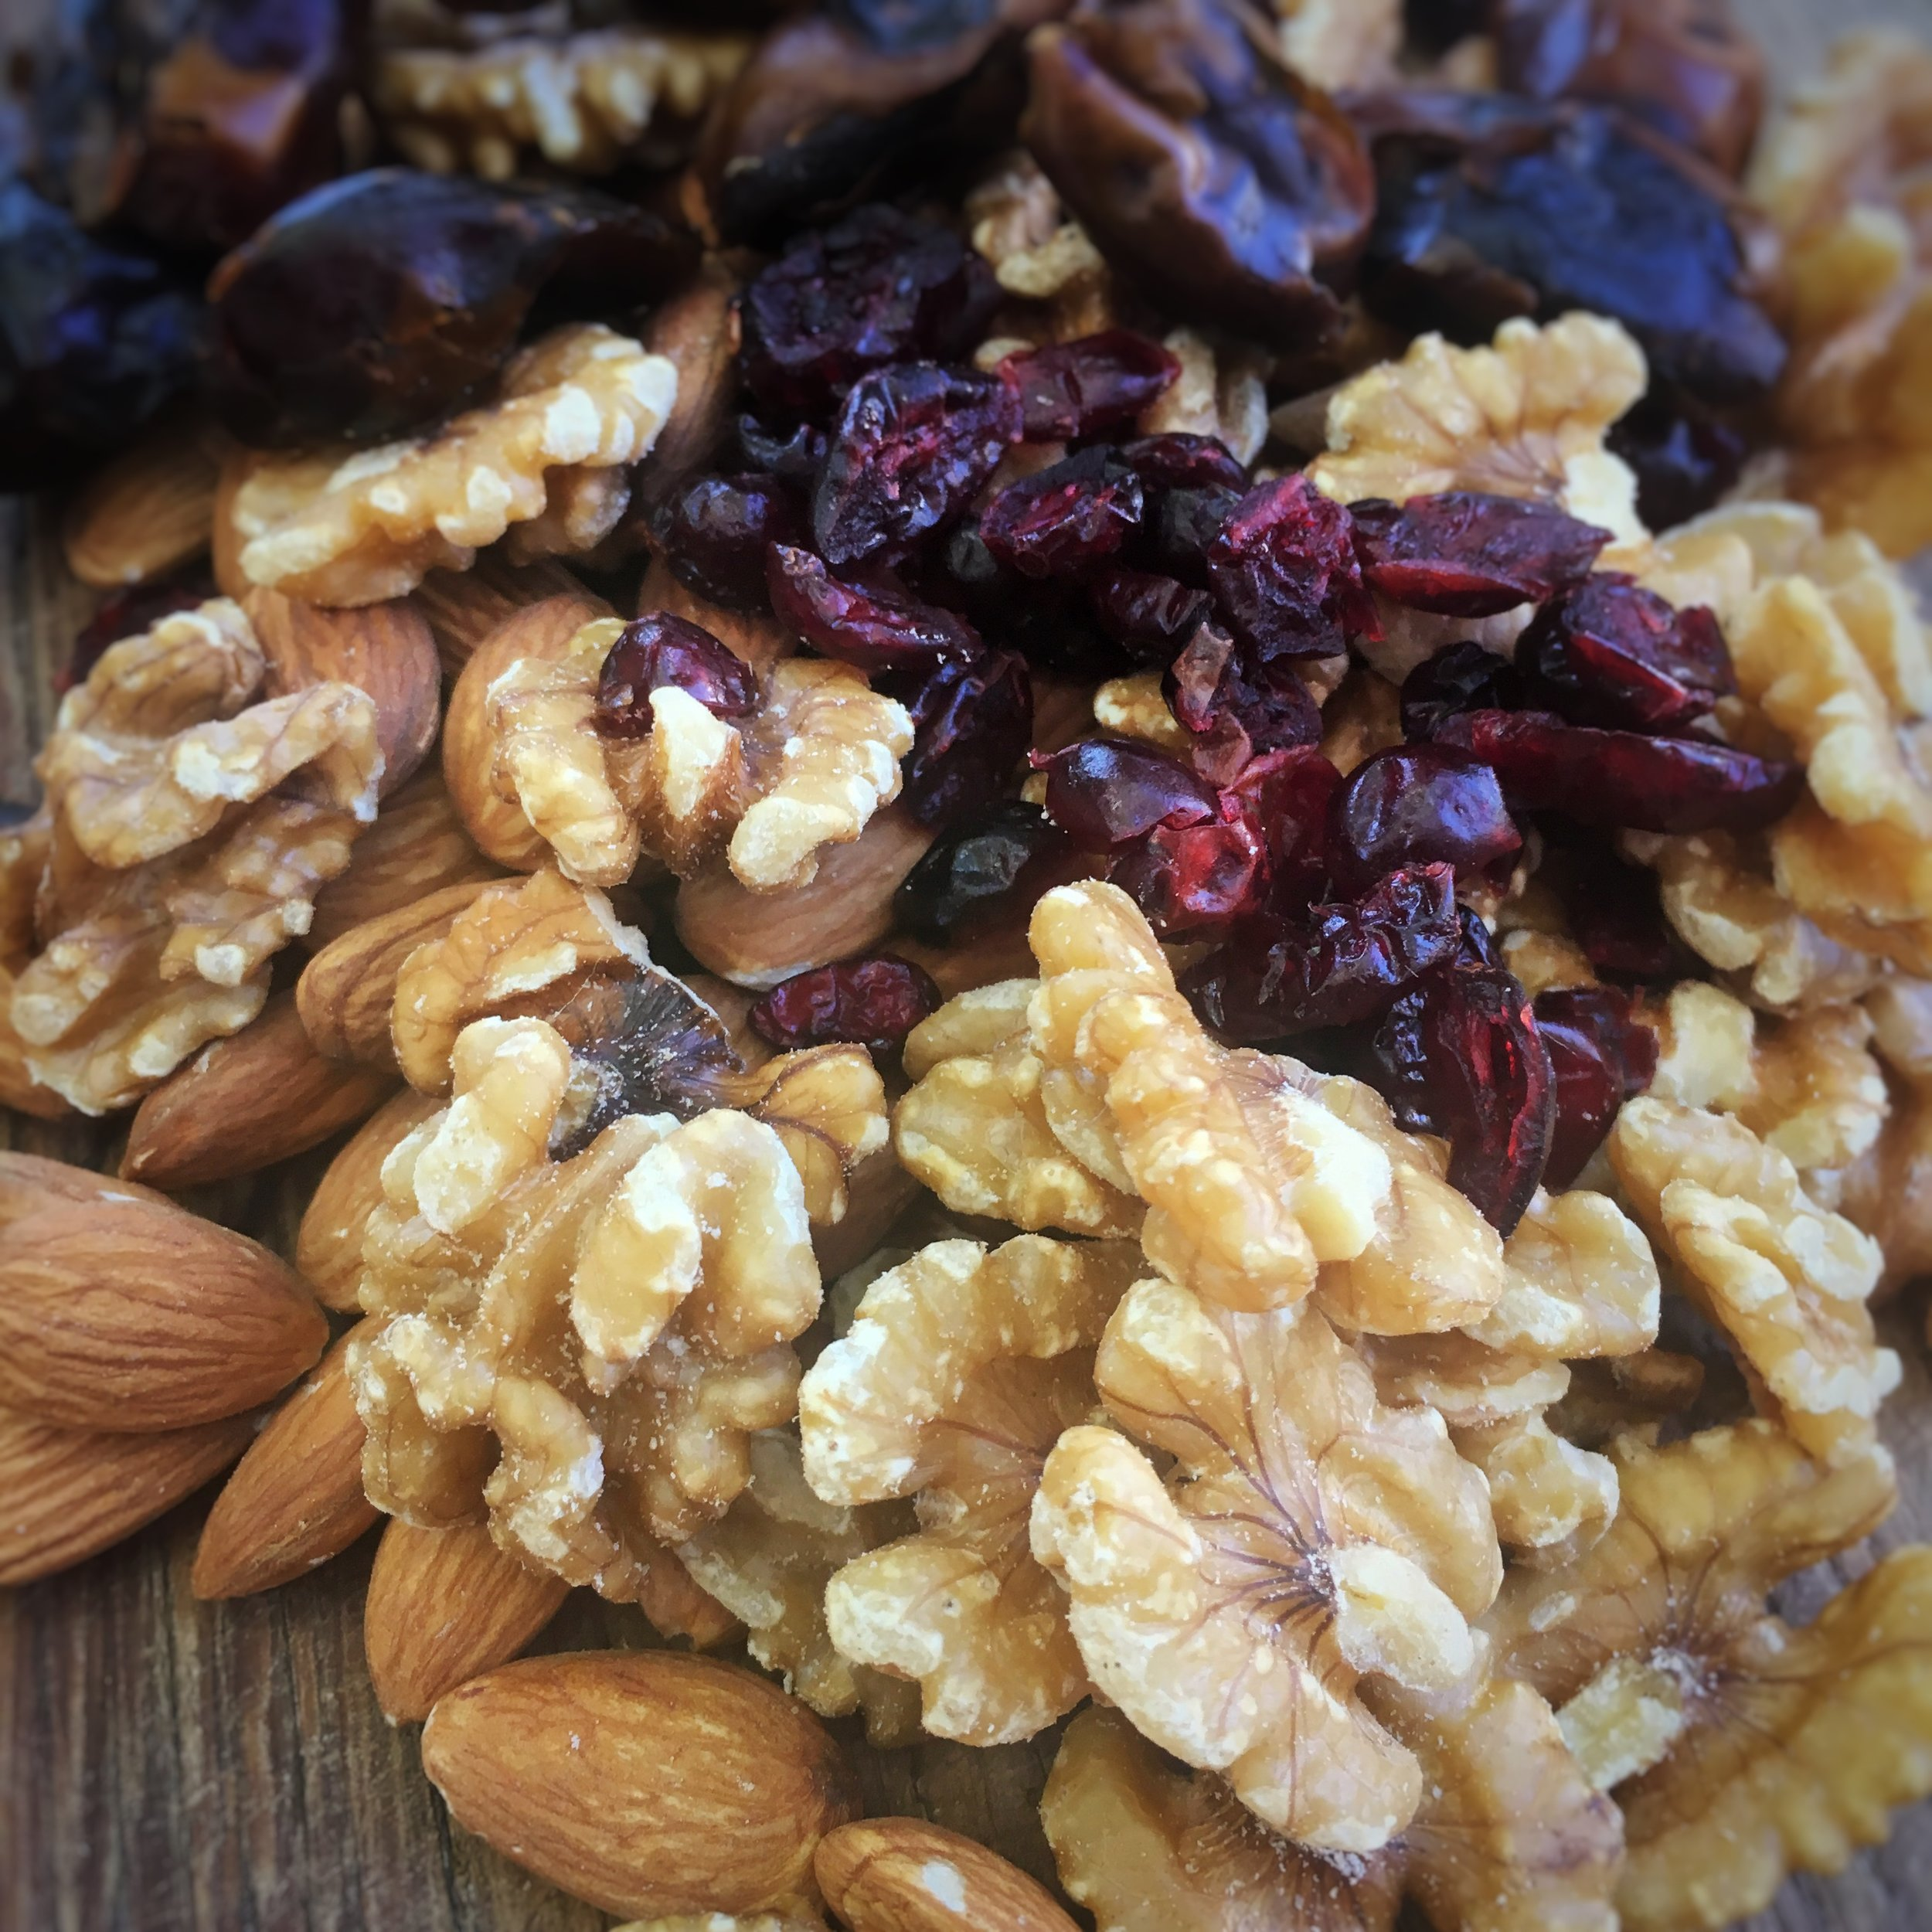 Use Raw Nuts - I've used walnuts and almonds but you can use any that take your fancy